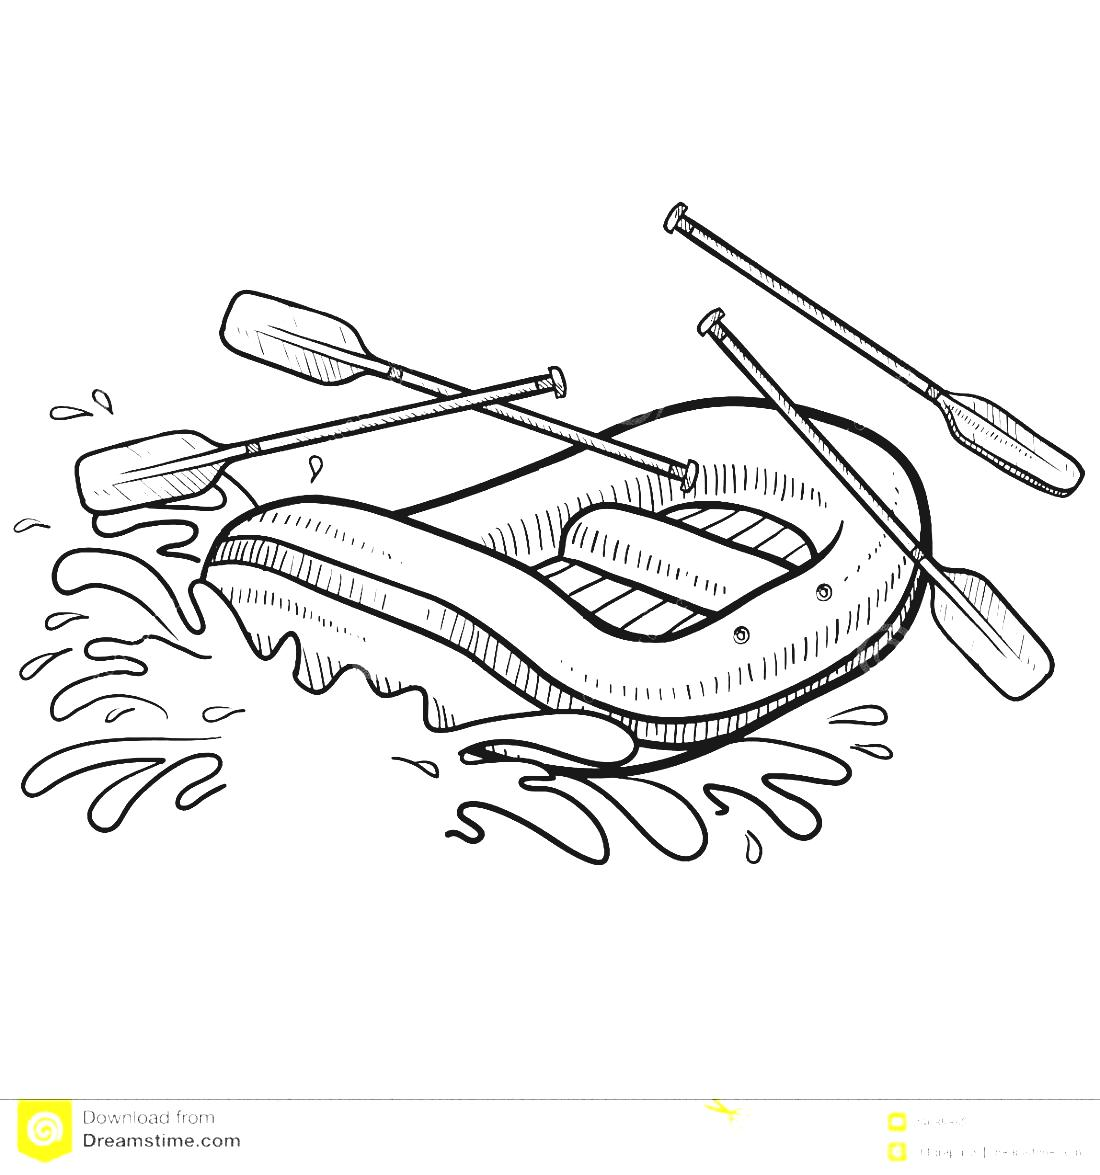 Adventure clipart black and white Adventure Clipart Rafting Rafting Clipart